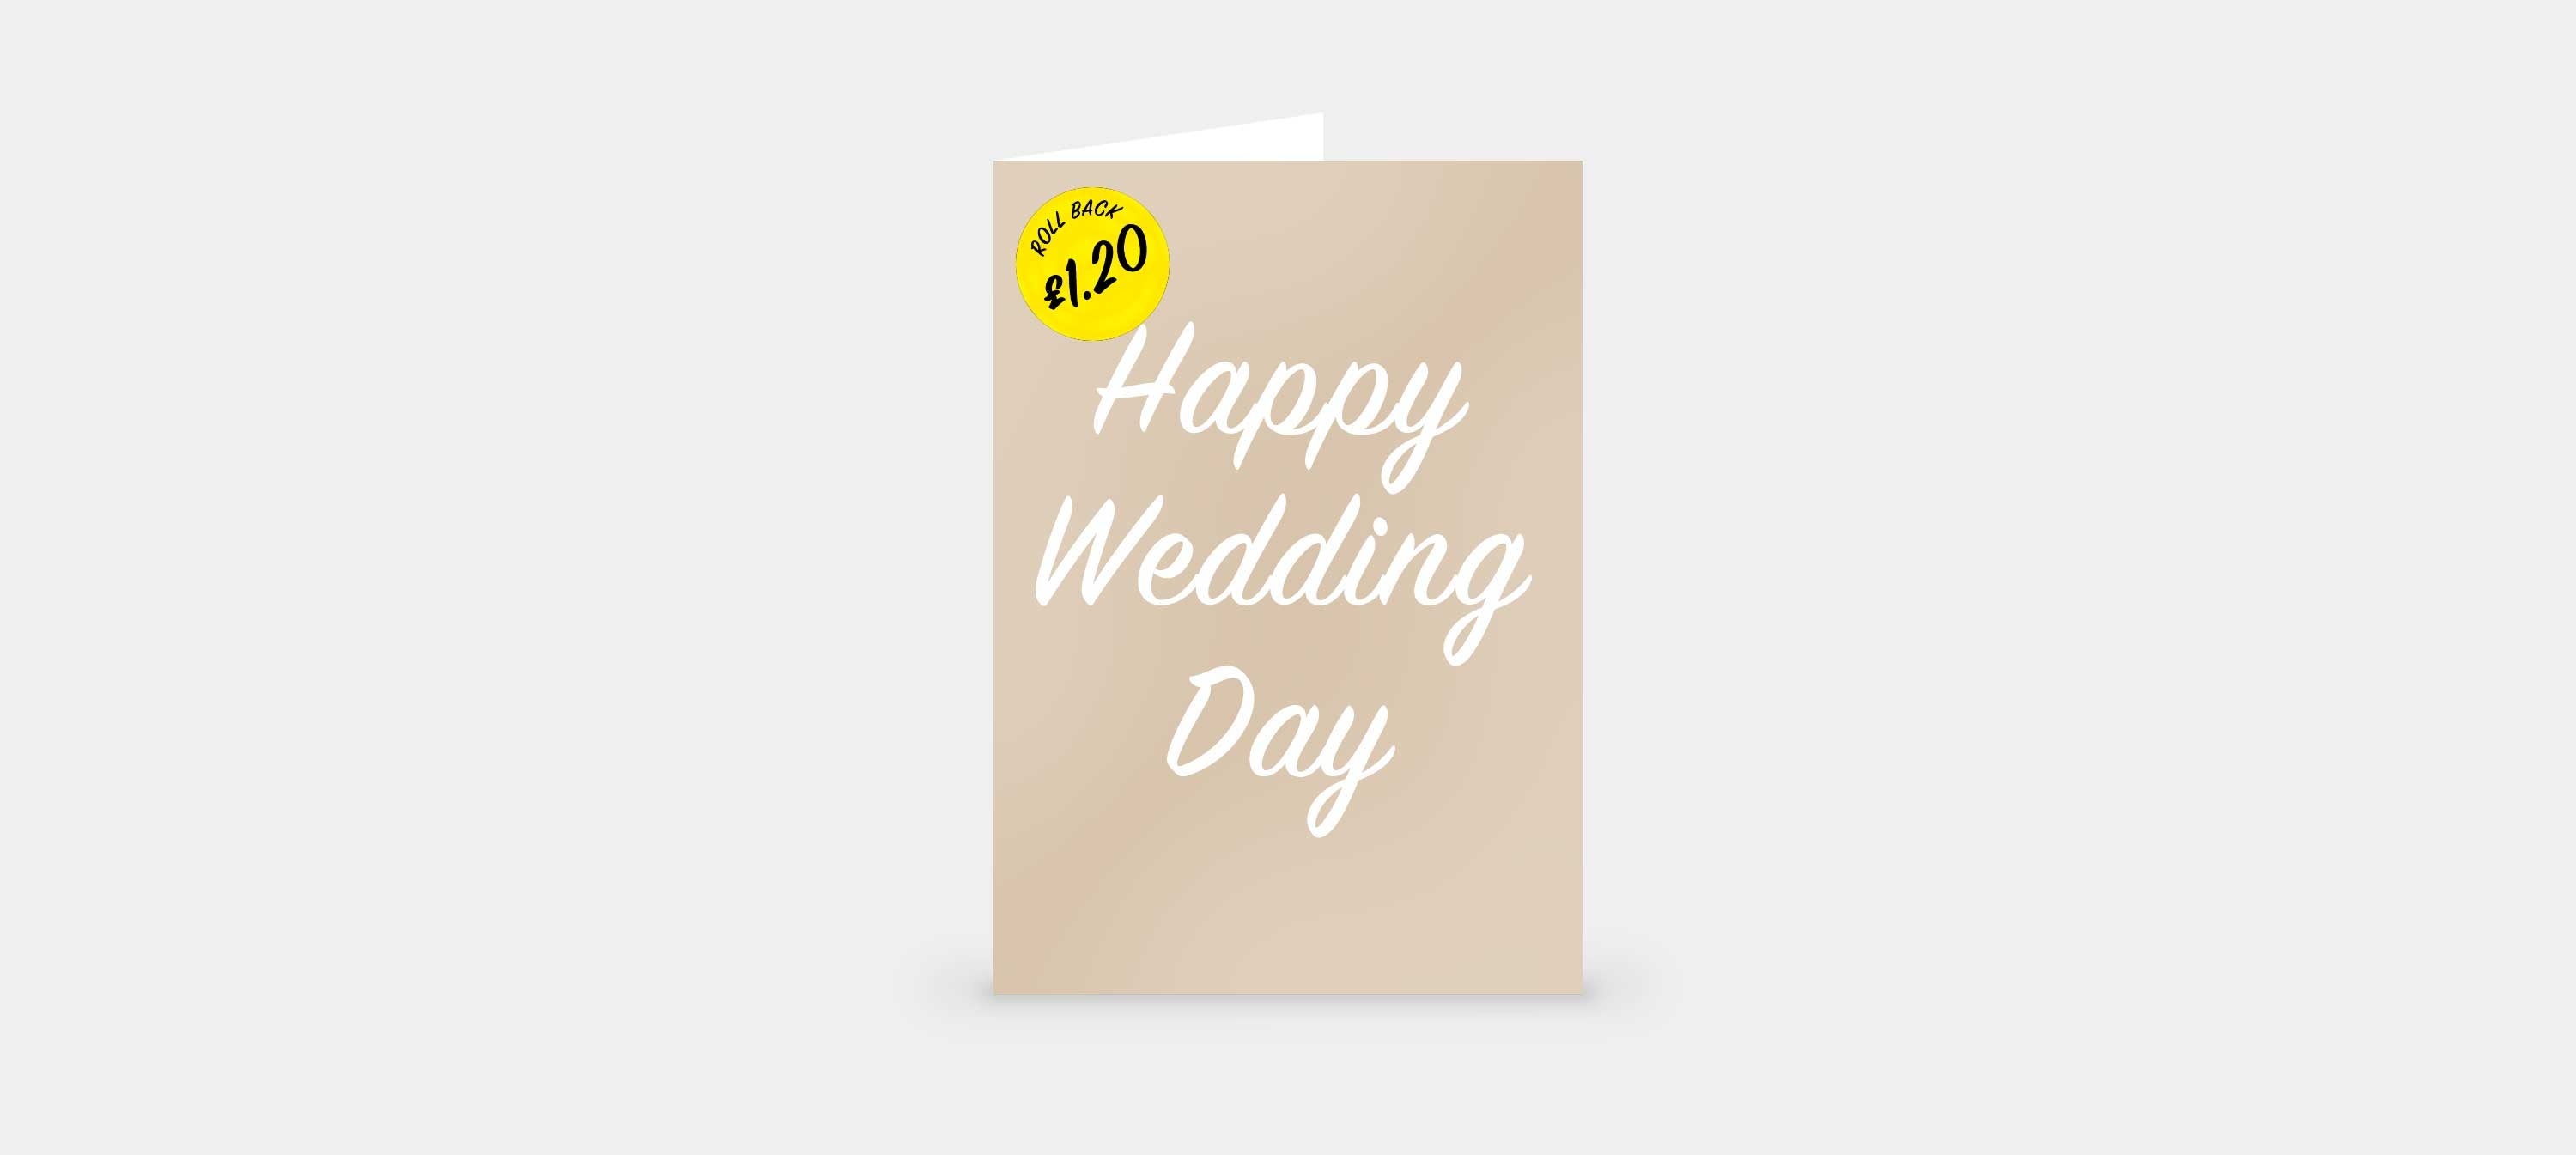 Wedding Card For £1.20